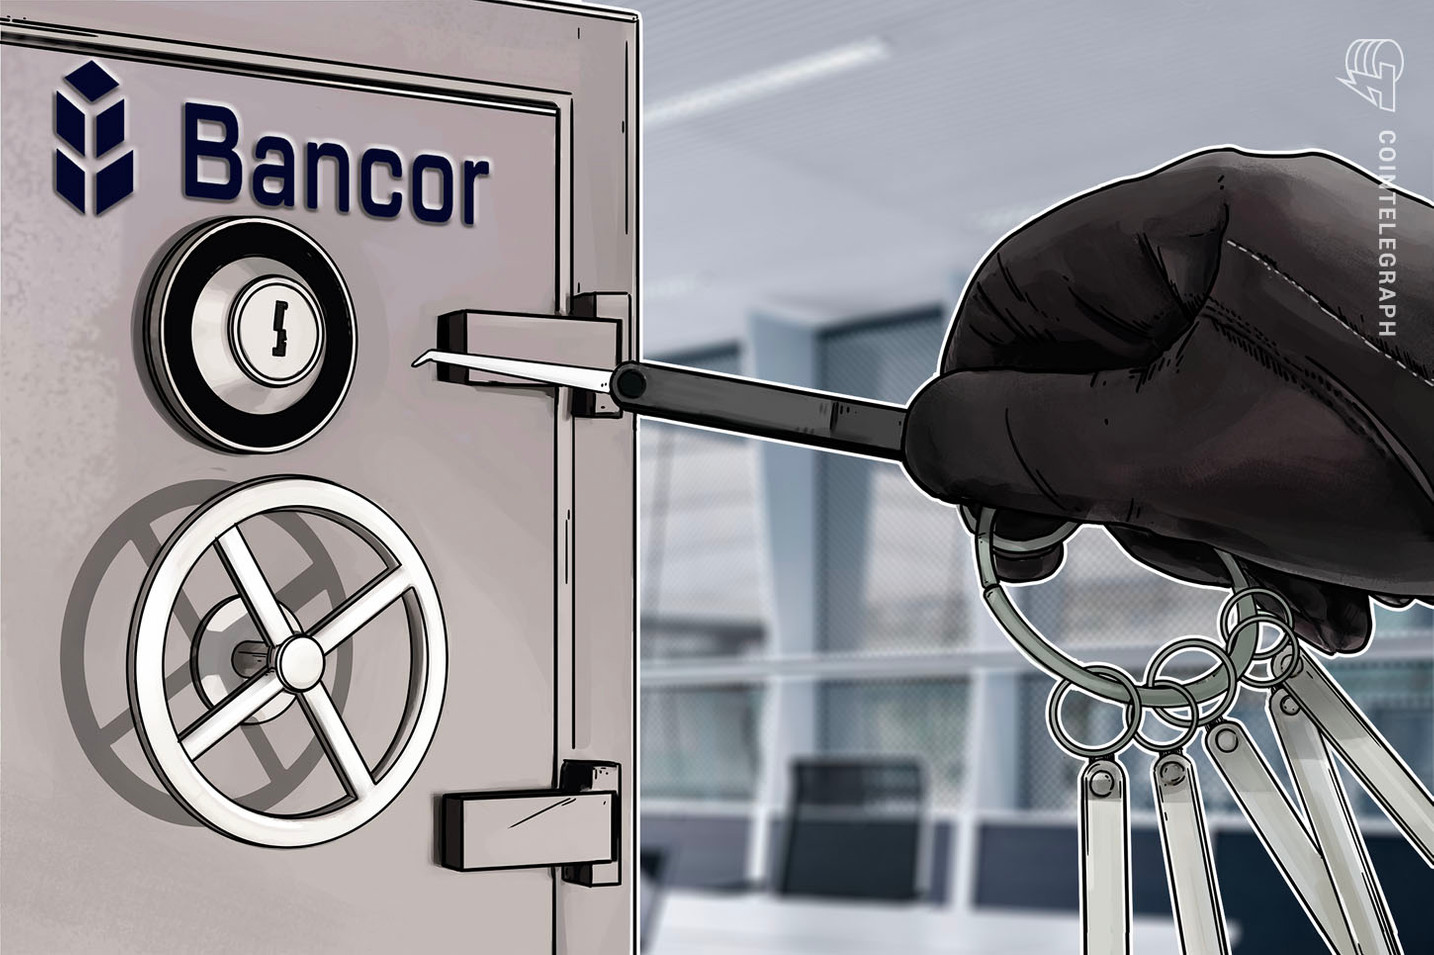 Exclusive: Following 'Security Breach,' Bancor Expects to Be Online in 24 Hours